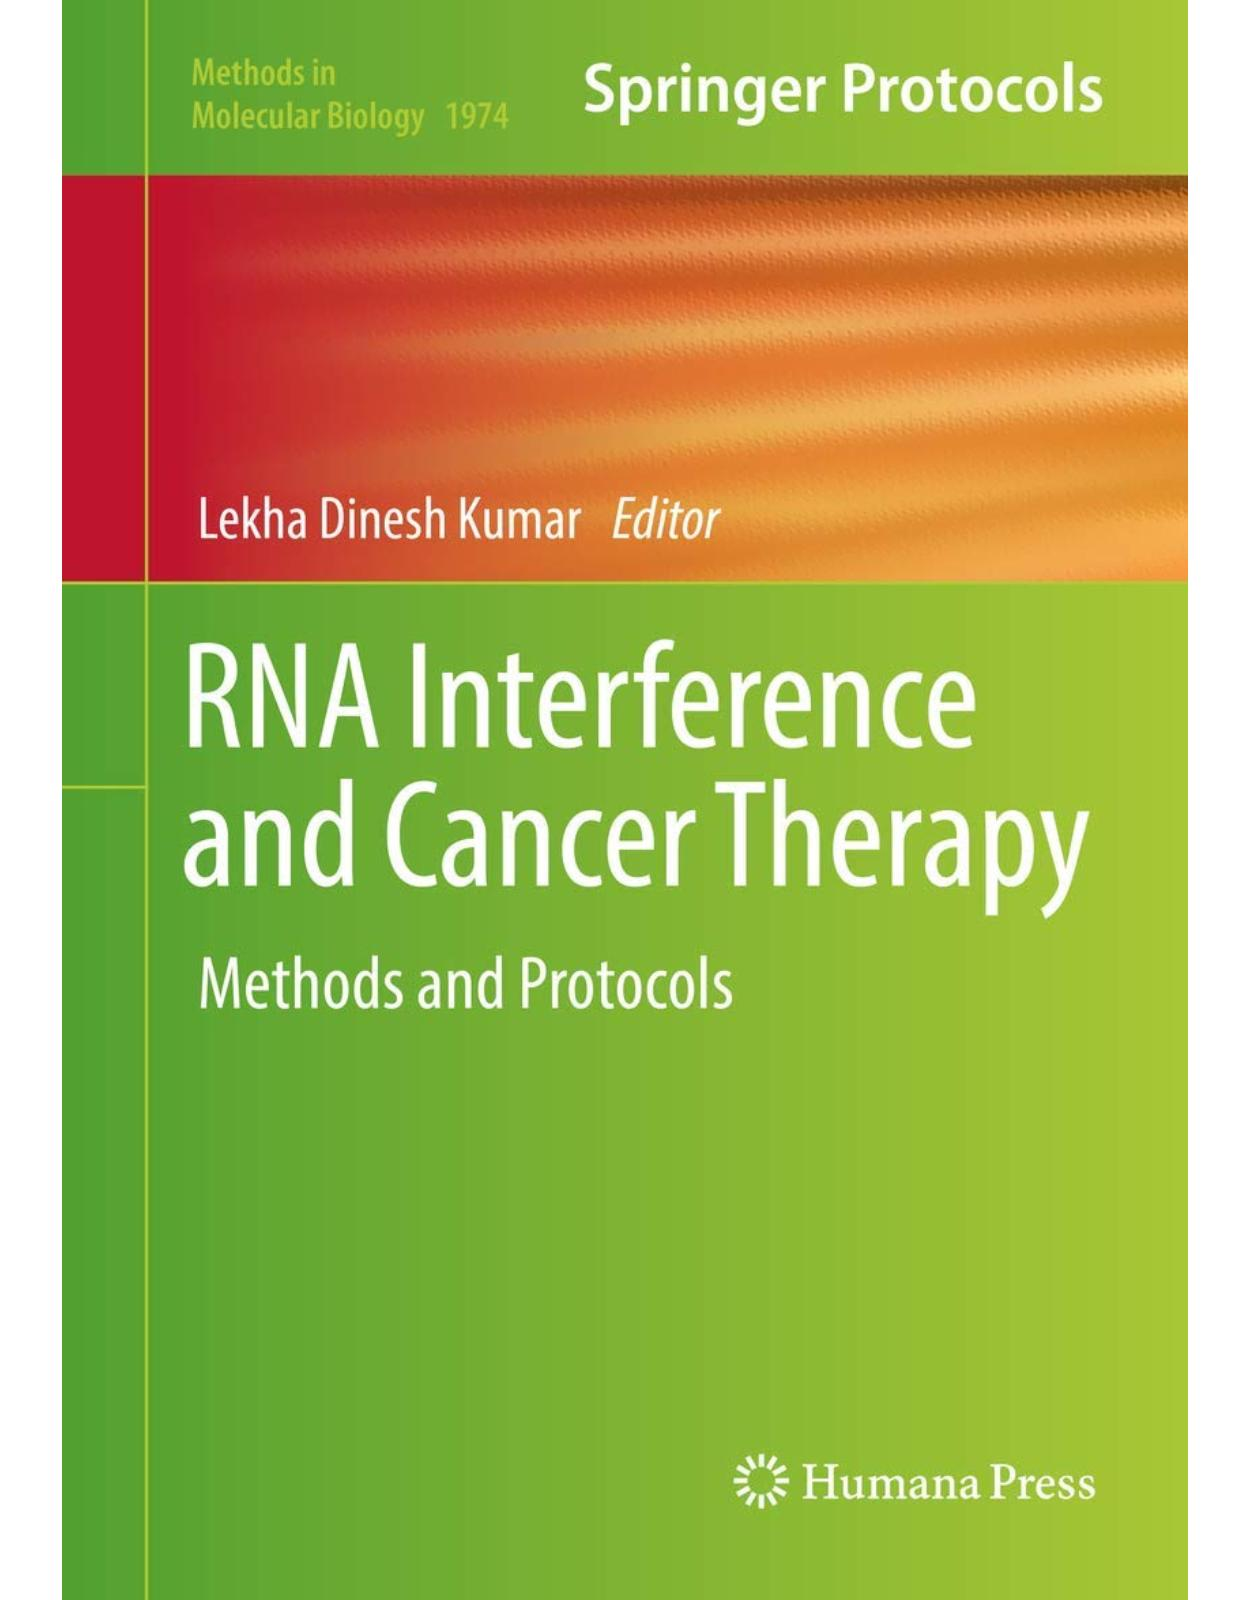 RNA Interference and Cancer Therapy. Methods and Protocols